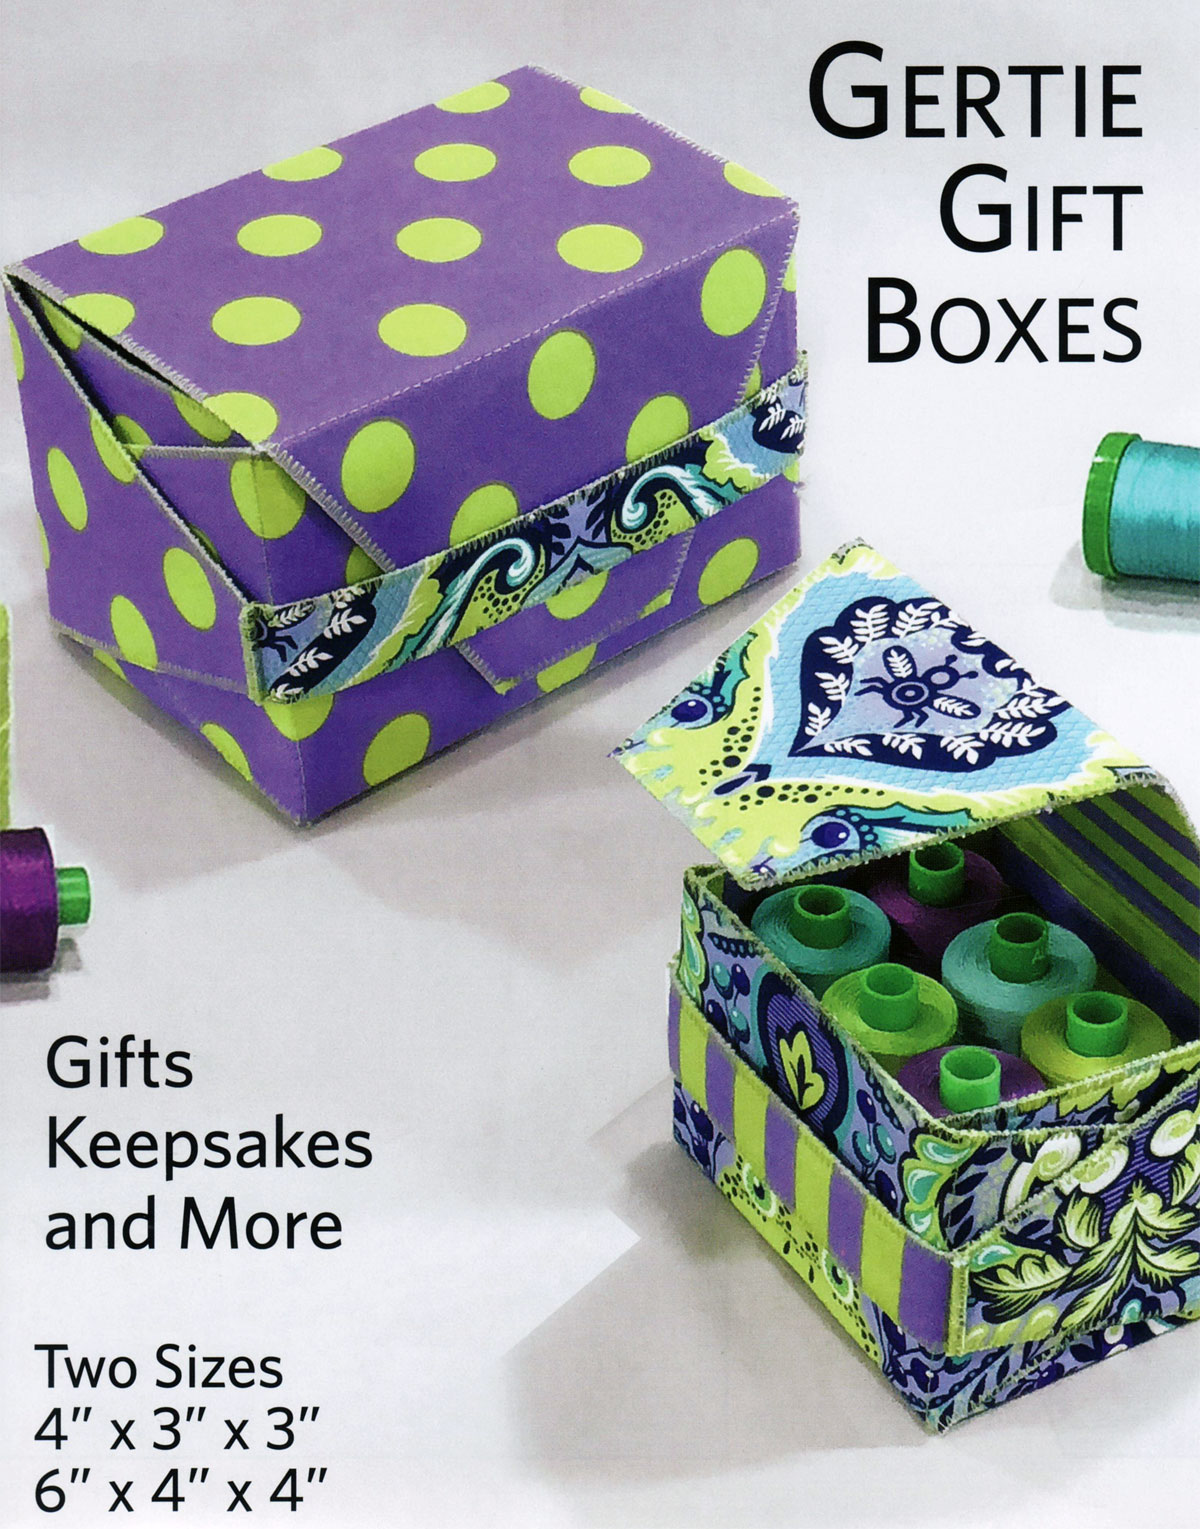 Gertie-Gift-Boxes-sewing-pattern-Lazy-Girl-Designs-2